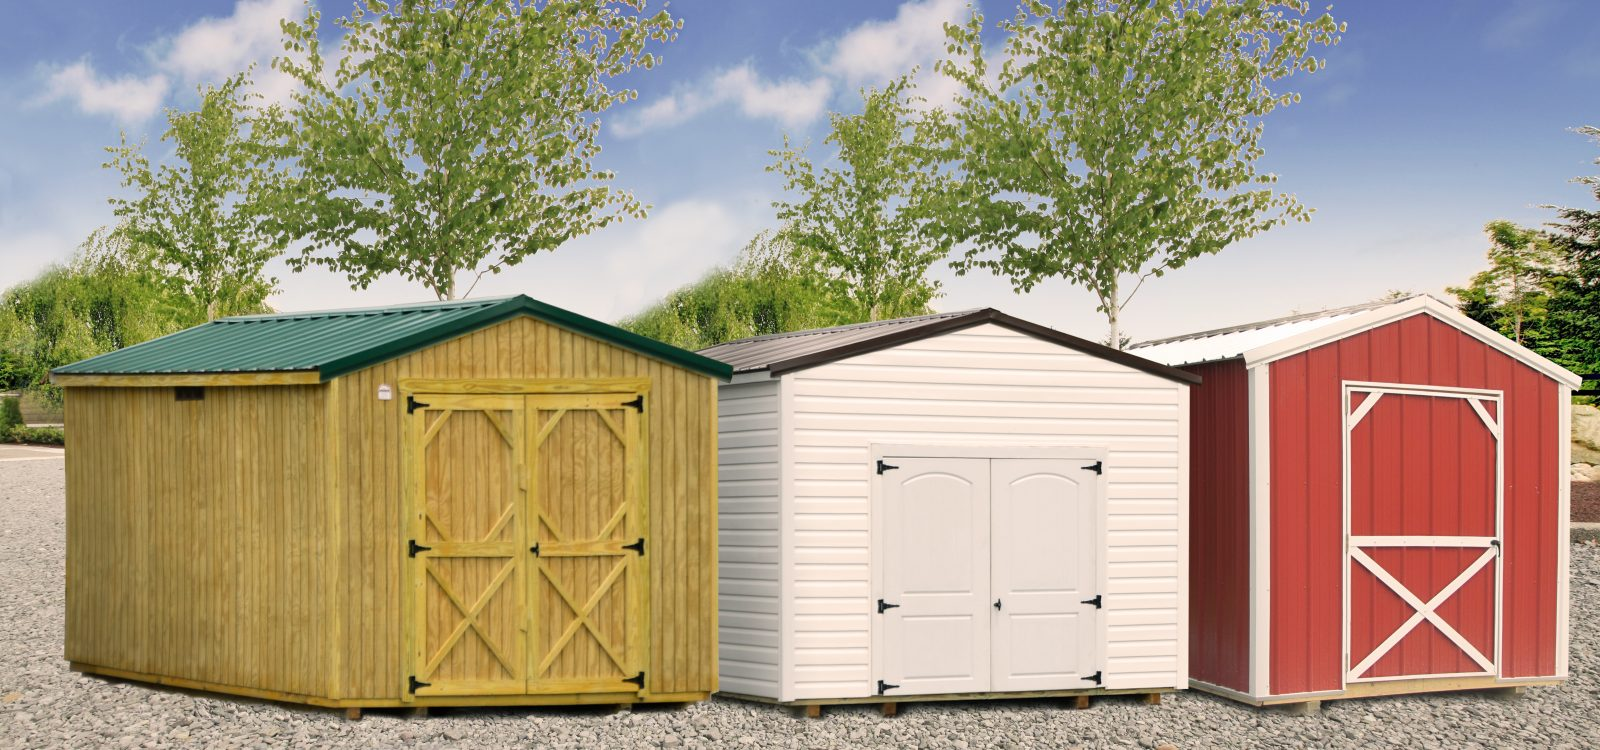 storage-sheds-by-siding-type